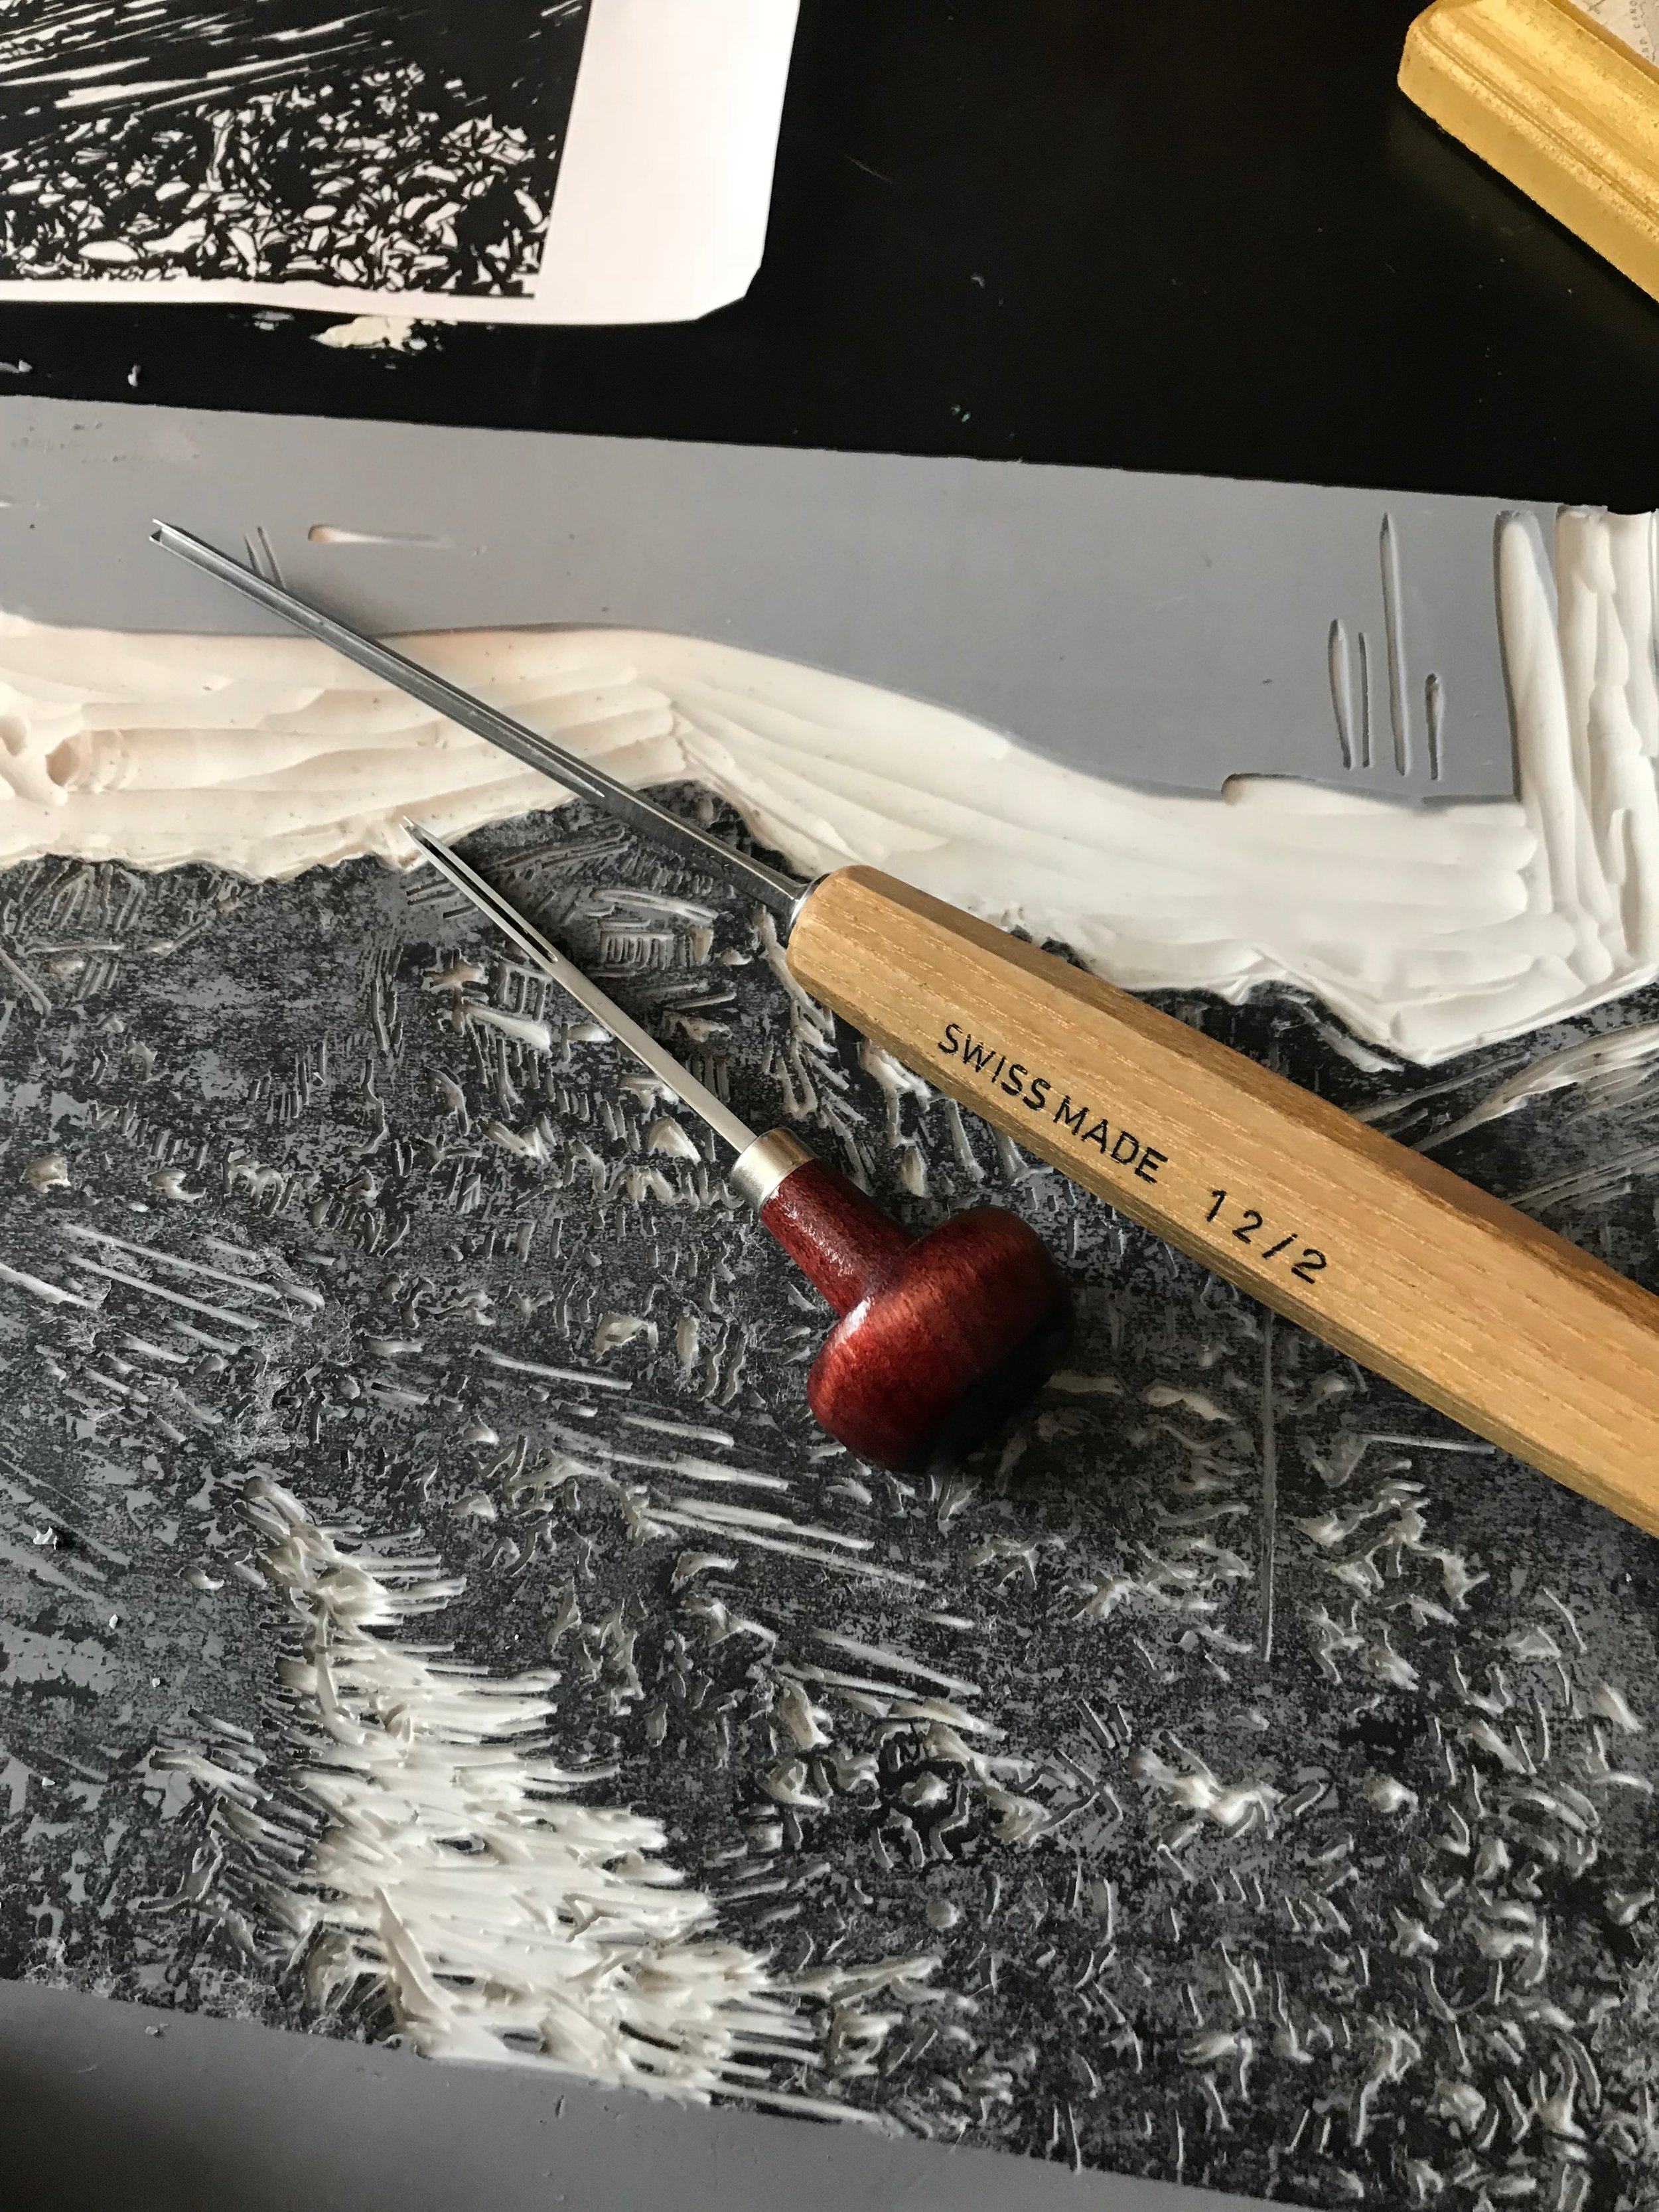 A closer look of the carving process. You can see I'm carving away everything I don't want to be inked. This linoleum will give a contrast when carving to help with that and to know when you made a deep enough gouge that it won't be inked.